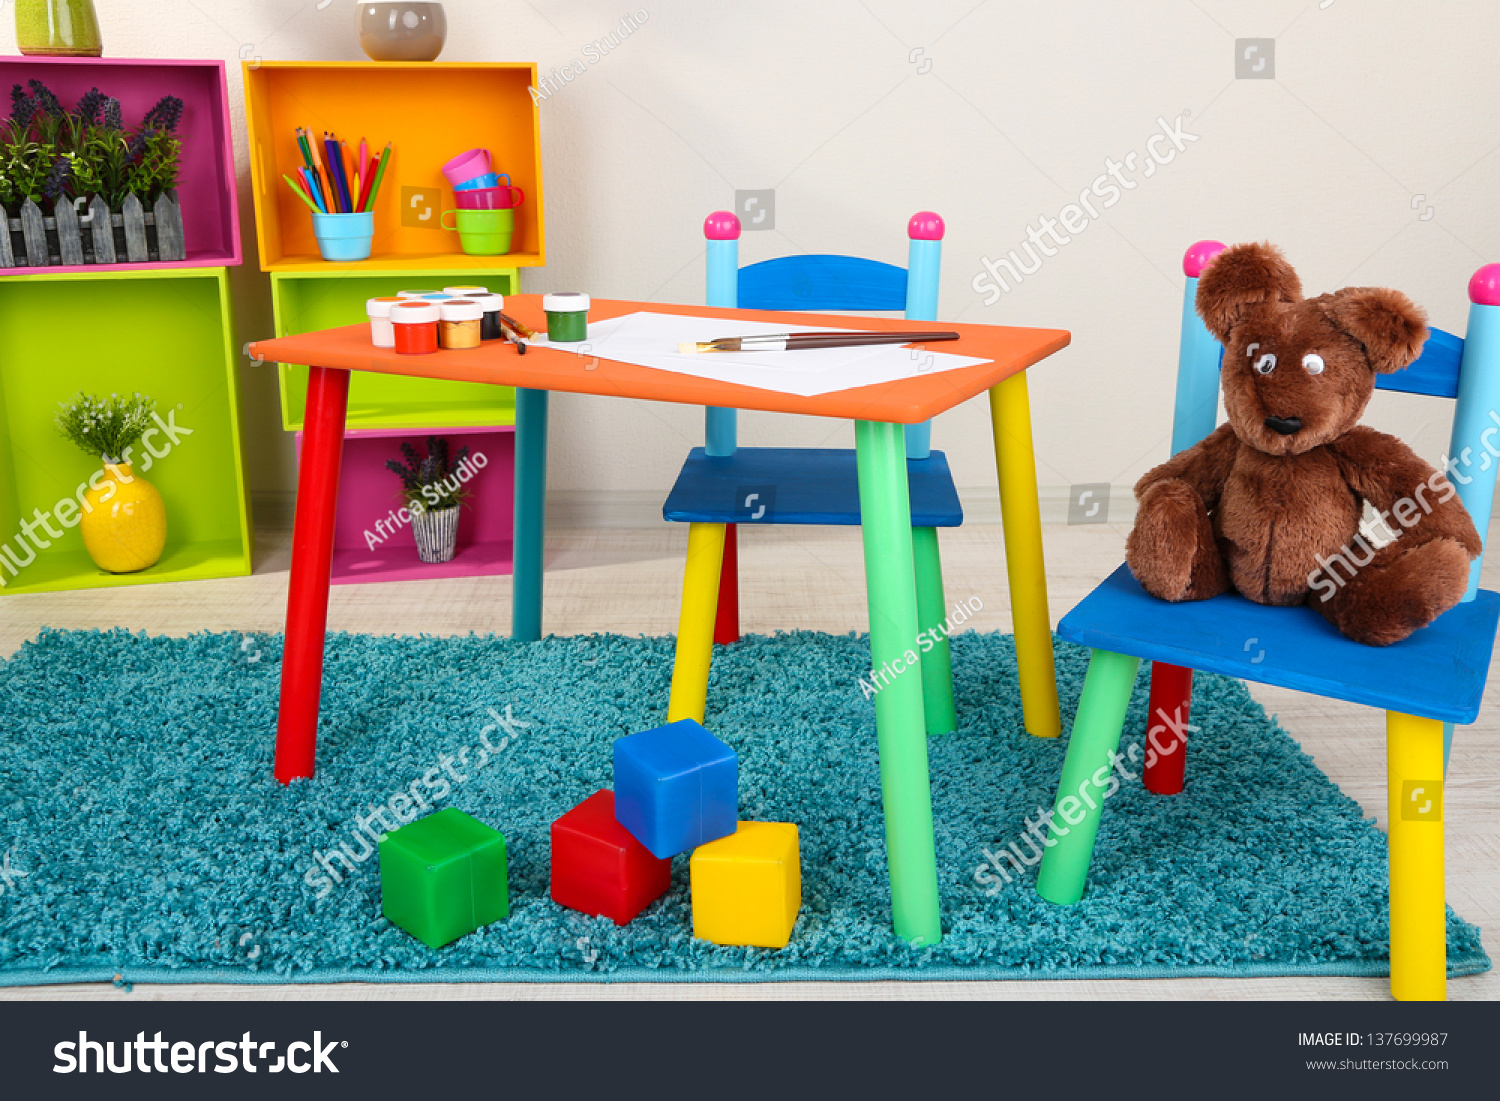 small colorful table chairs little kids stock photo 137699987 shutterstock. Black Bedroom Furniture Sets. Home Design Ideas